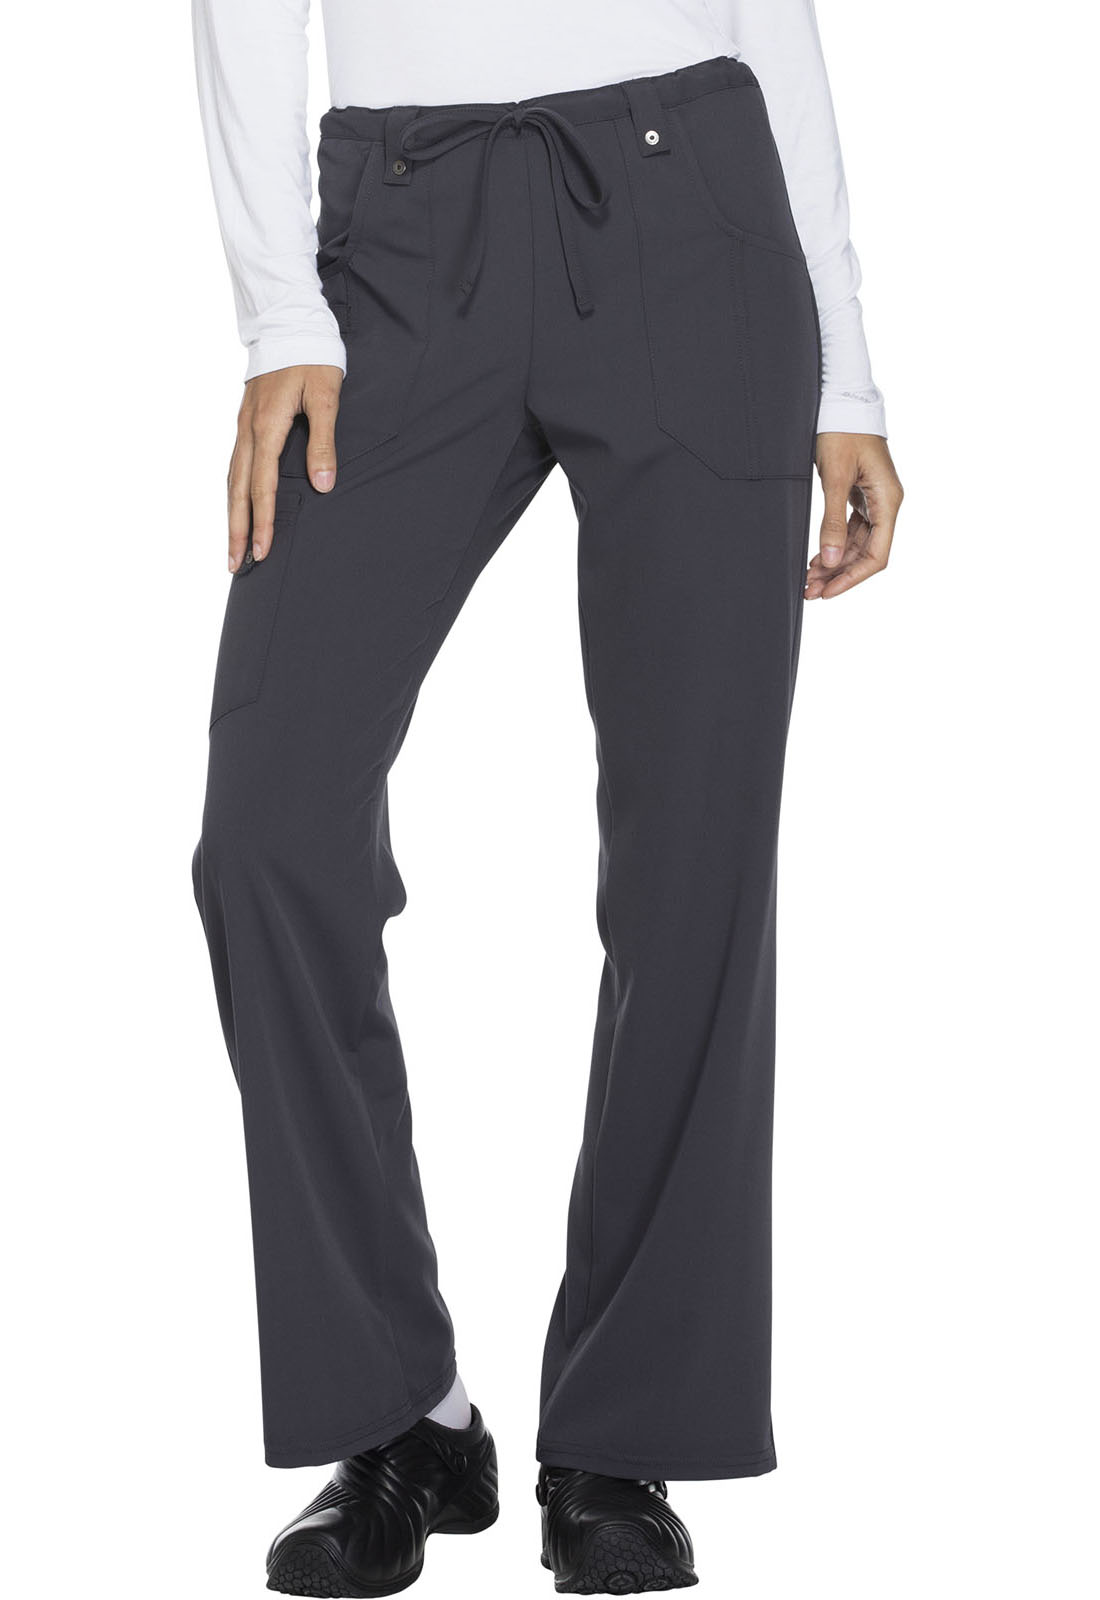 8e80298128e Xtreme Stretch Mid Rise Drawstring Cargo Pant in Lt. Pewter 82011 ...